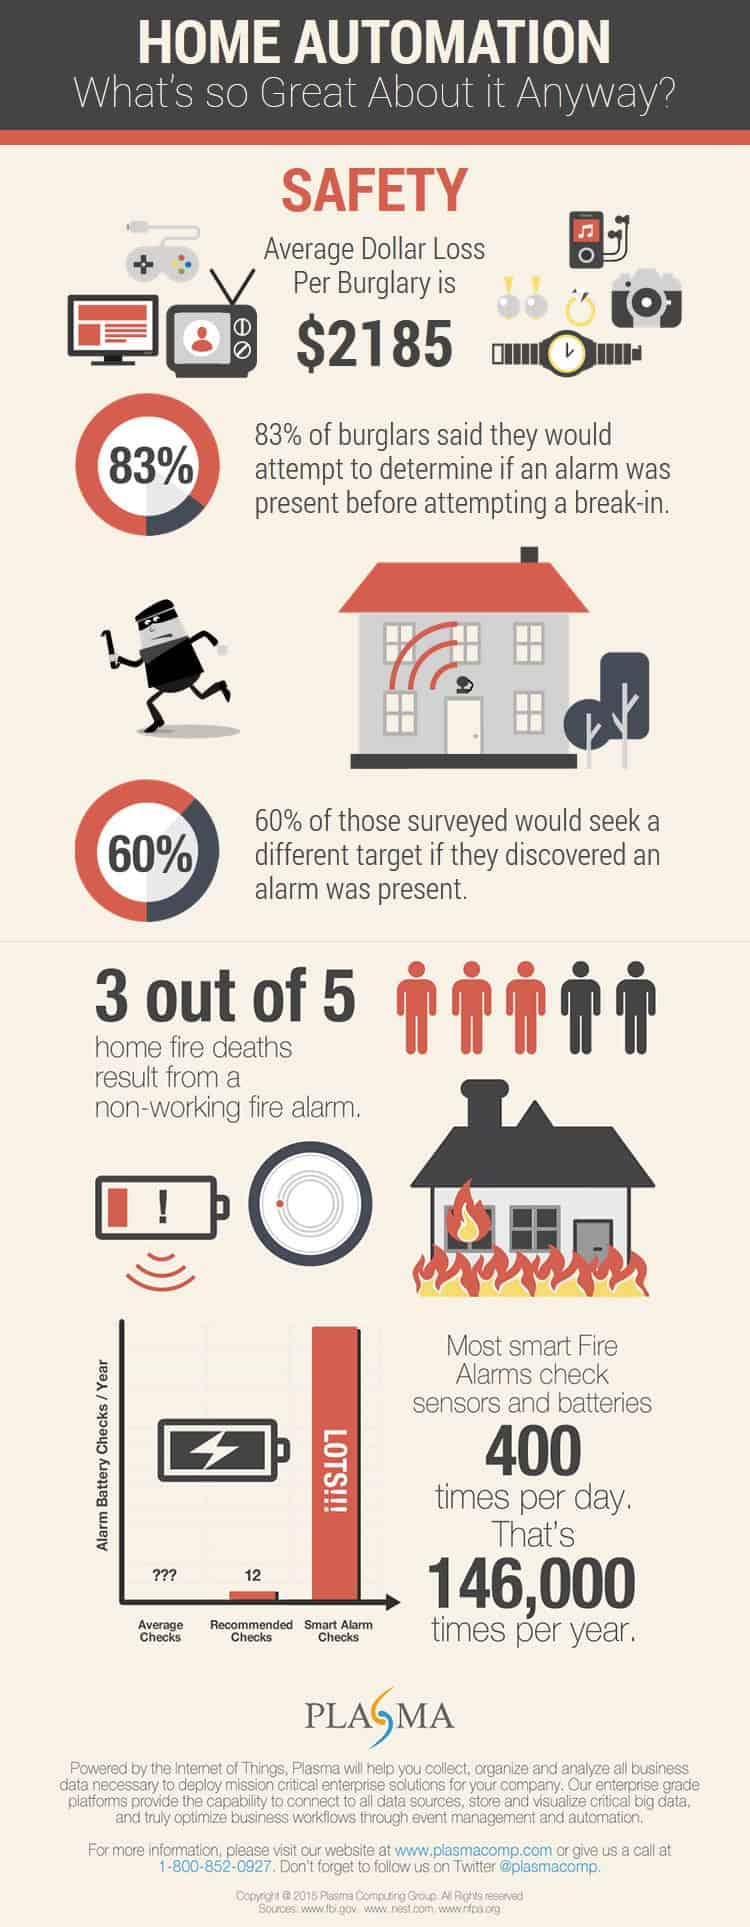 Infographic : Home Automation Part 1 - Safety